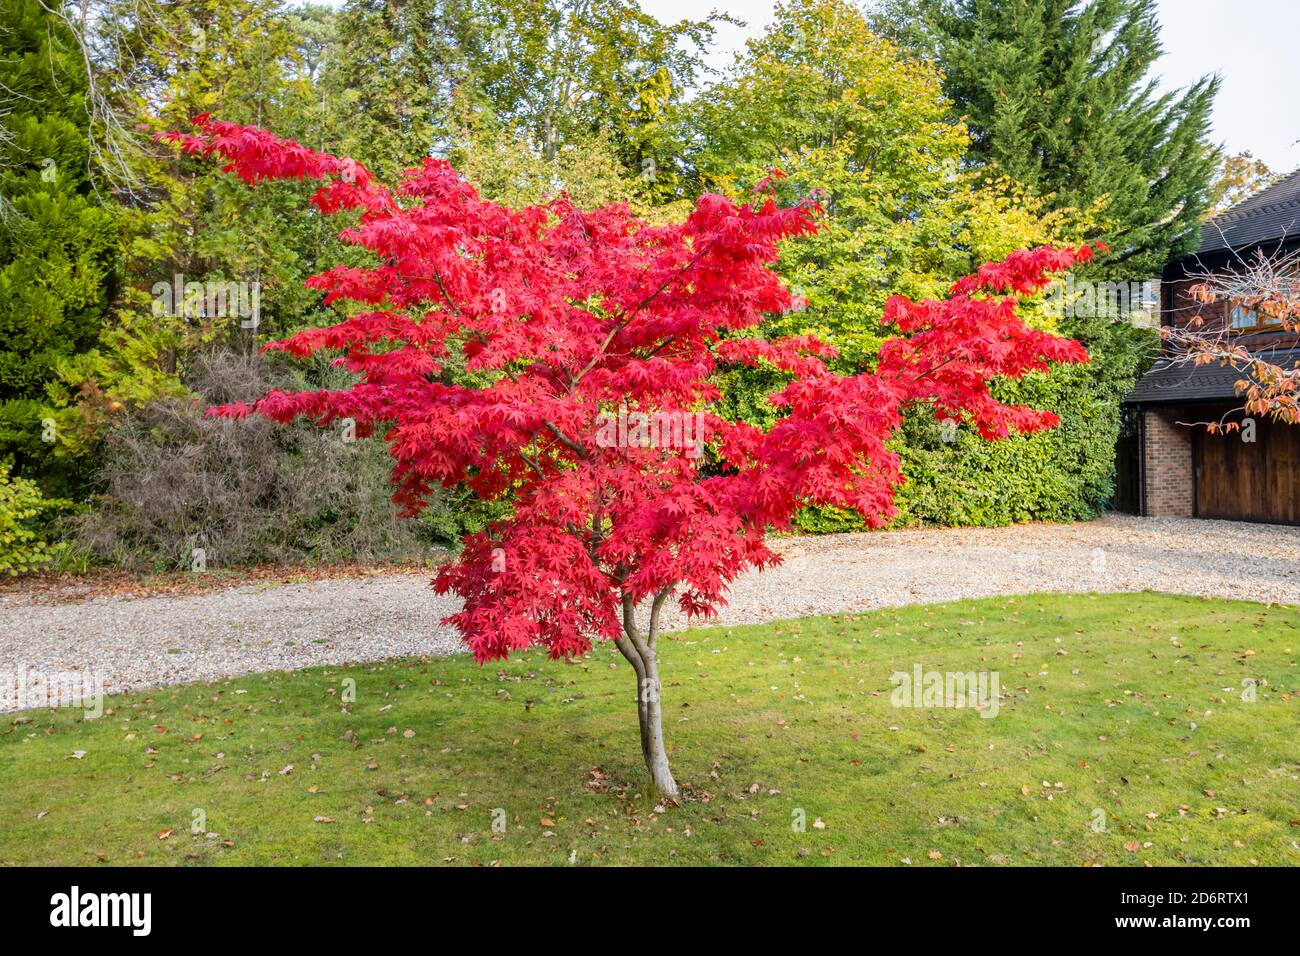 A lone Japanese maple (Acer palmatum) tree in crimson red autumn colours growing in the front garden of a suburban house in Surrey, south-east England Stock Photo